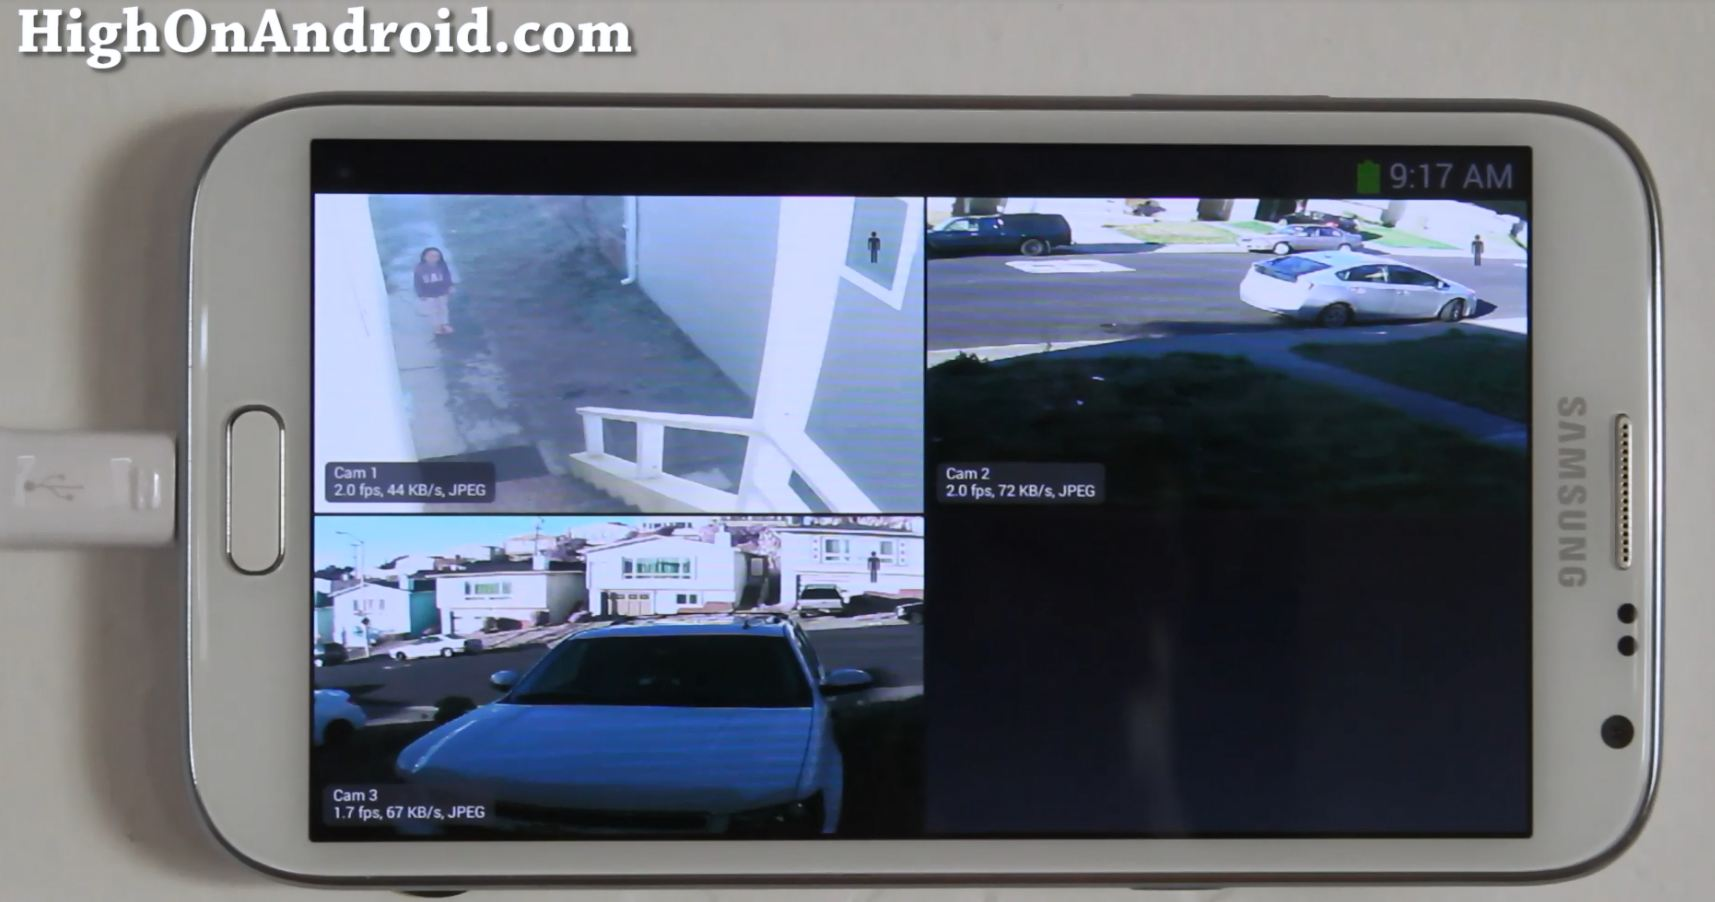 android-security-camera-liveview-system-tinycam-pro